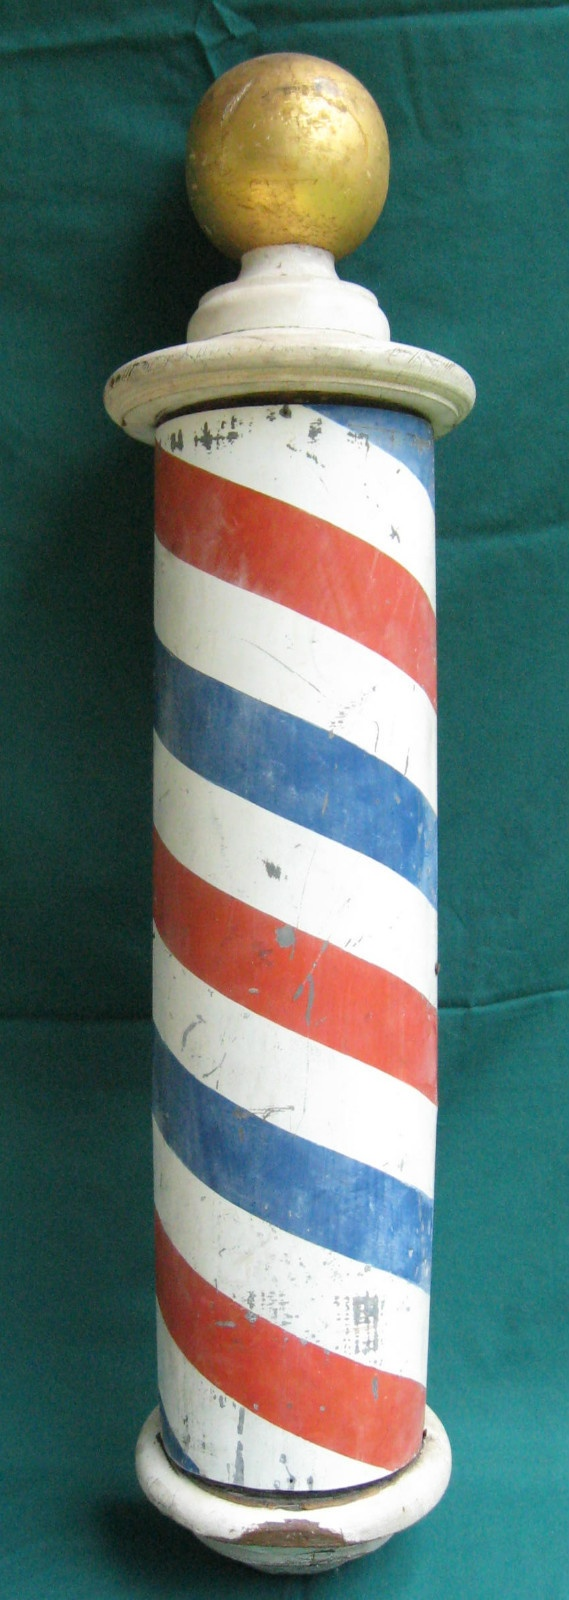 Vintage Barber Pole decorative advertising sign | eBay - We get haircuts at our July 4th gathering!!!